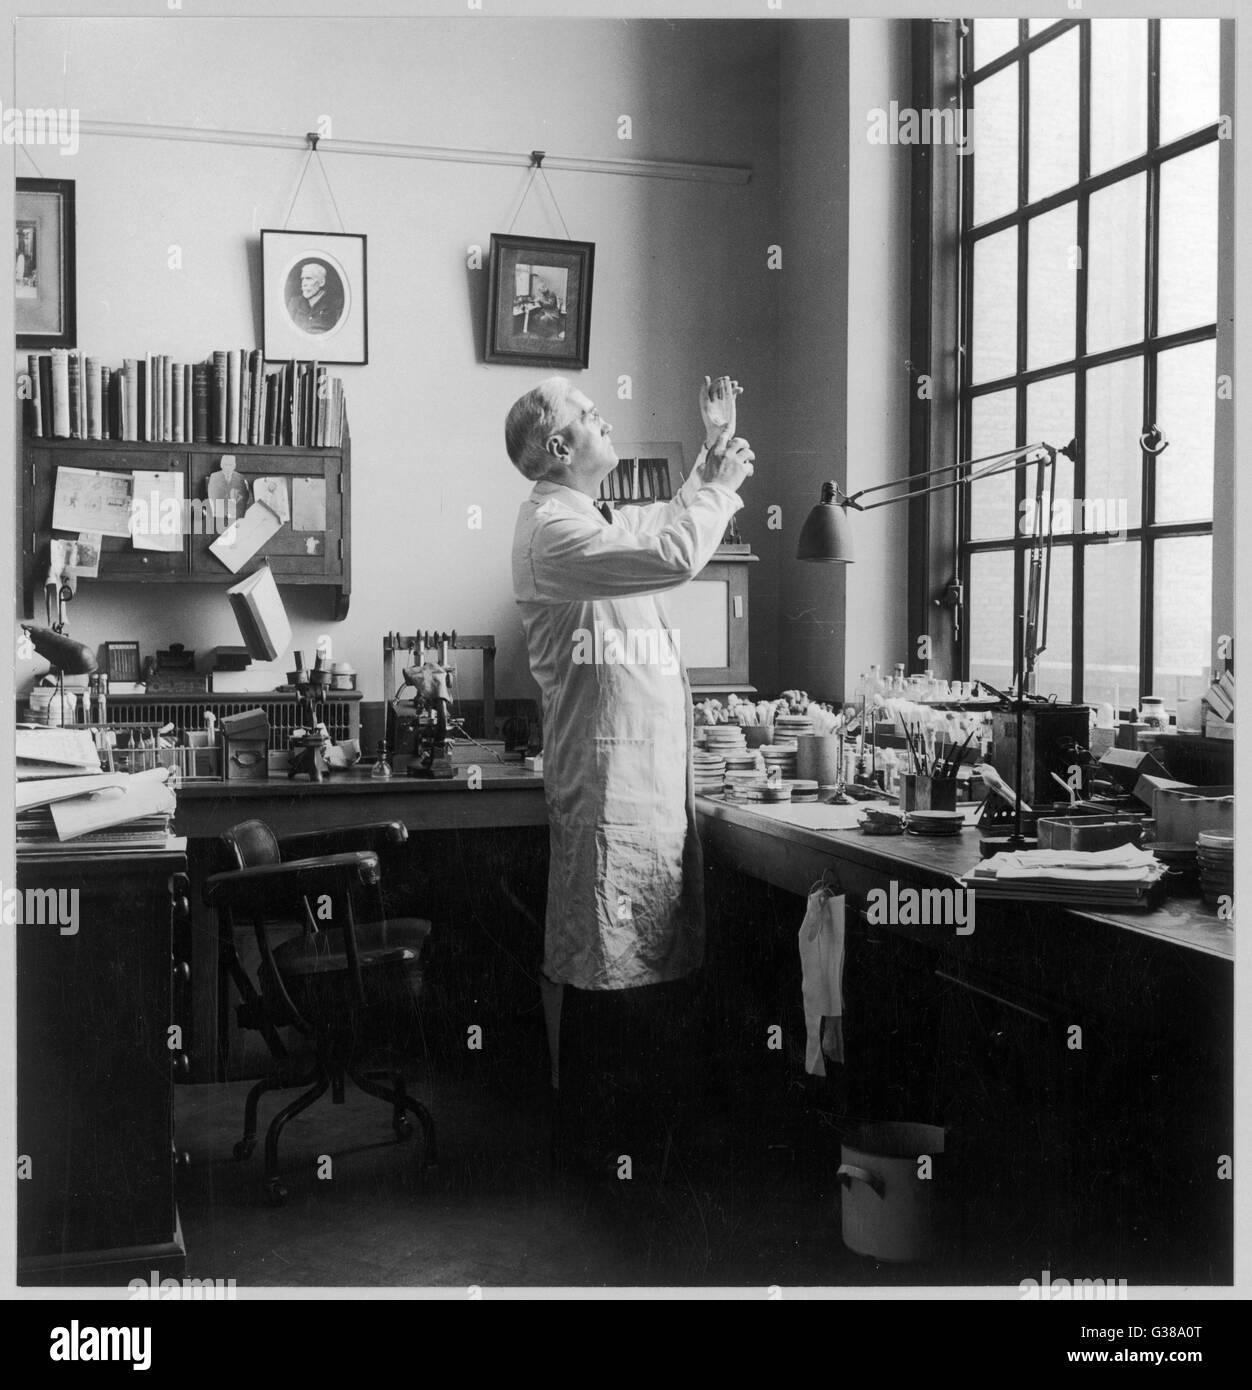 SIR ALEXANDER FLEMING -  Scottish bacteriologist at  work in his laboratory.       Date: 1881 - 1955 - Stock Image